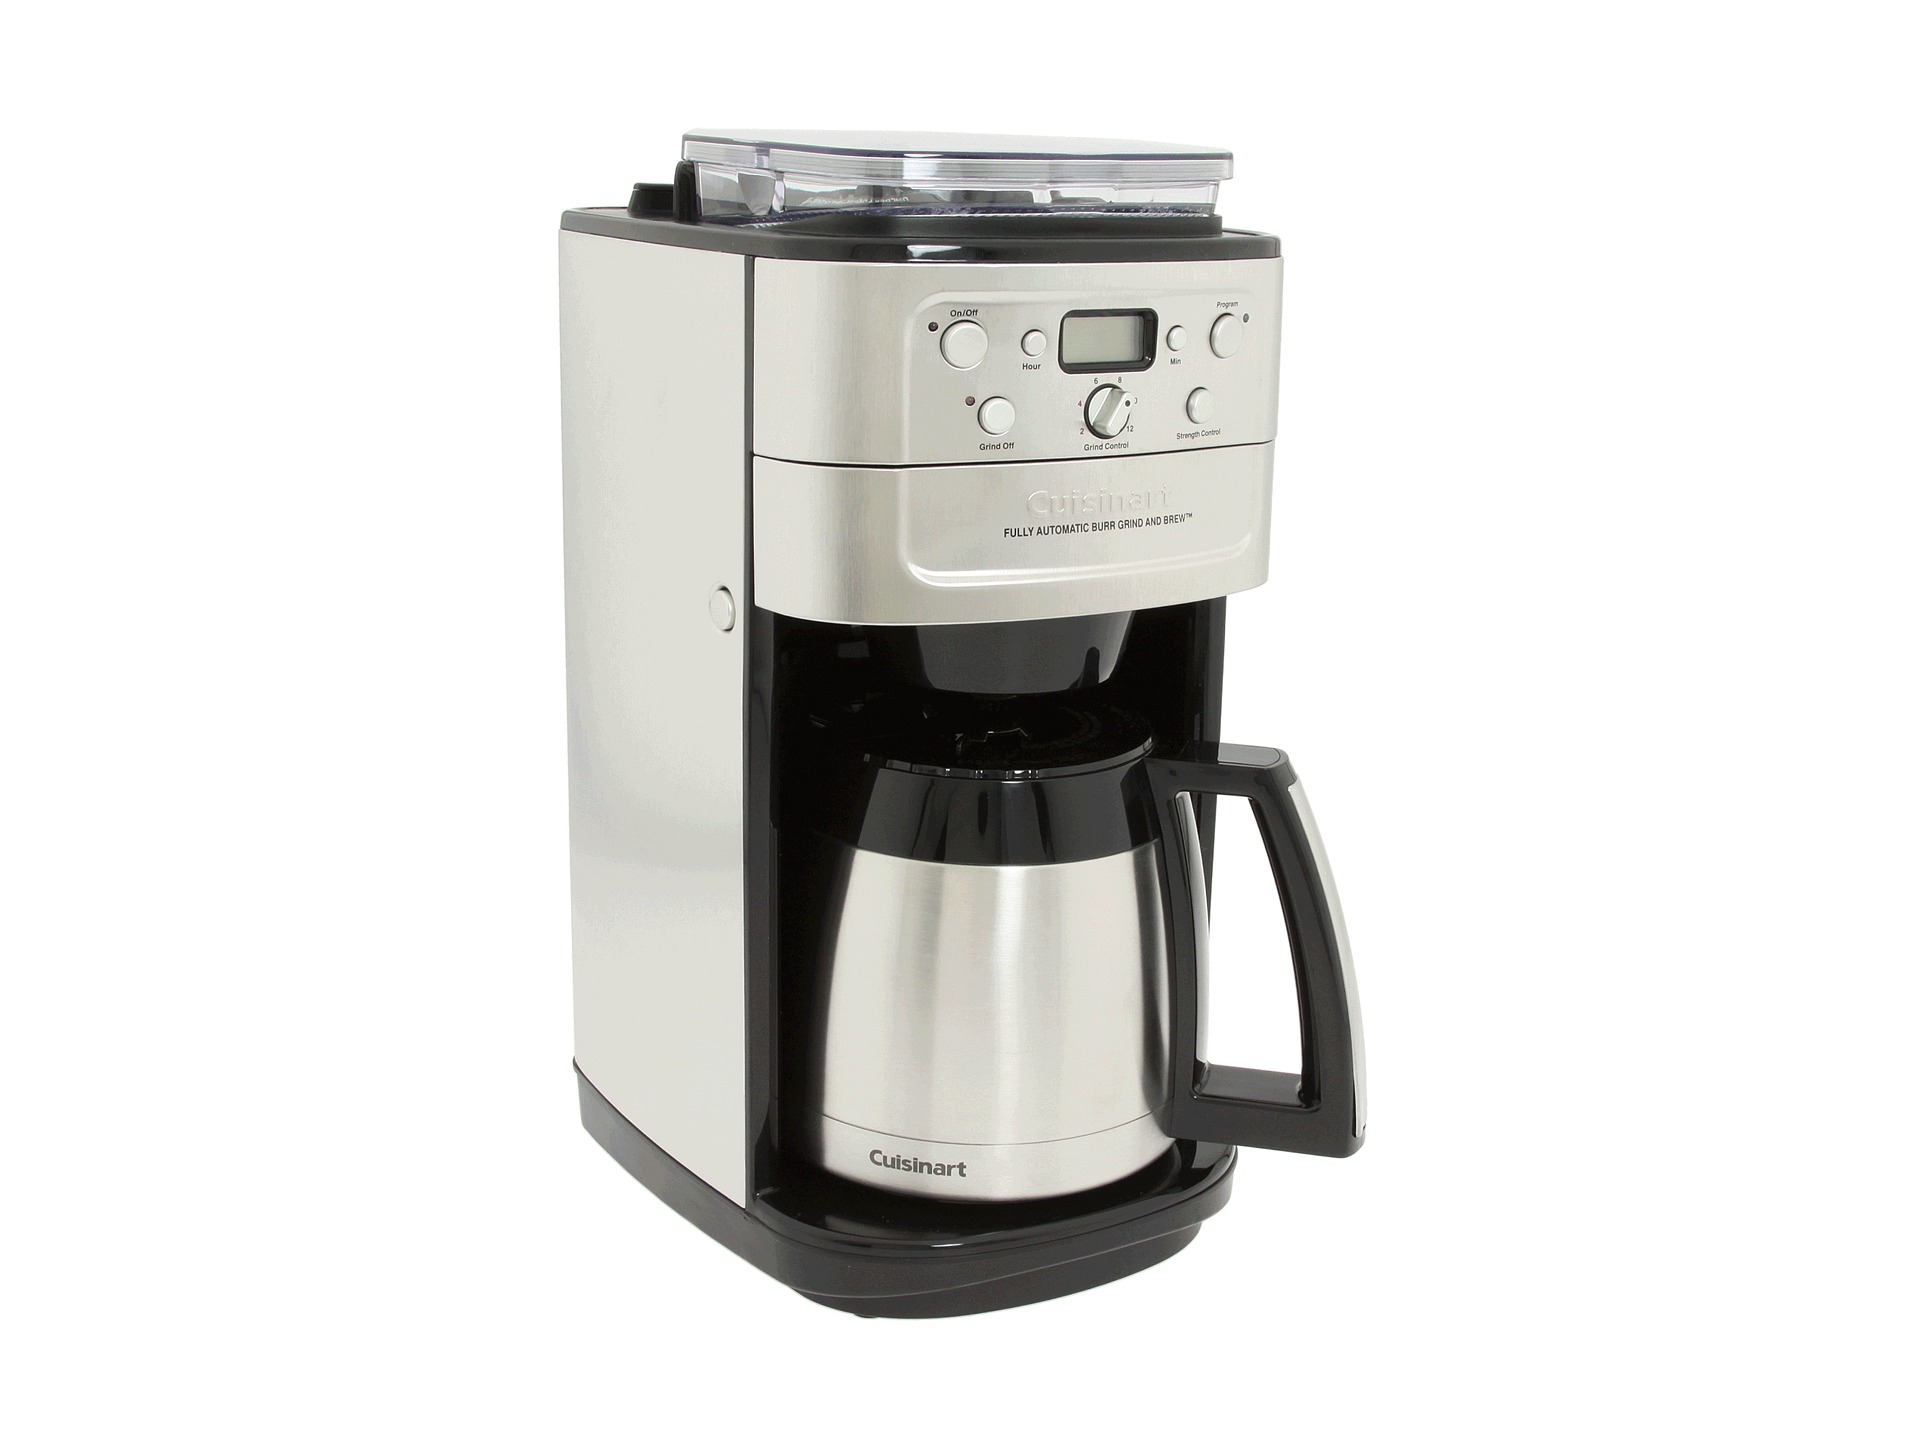 Cuisinart Coffee Maker With Grinder Leaking : Cuisinart Dgb 900bc Grind Brew Thermal 12 Cup Coffee Maker Shipped Free at Zappos